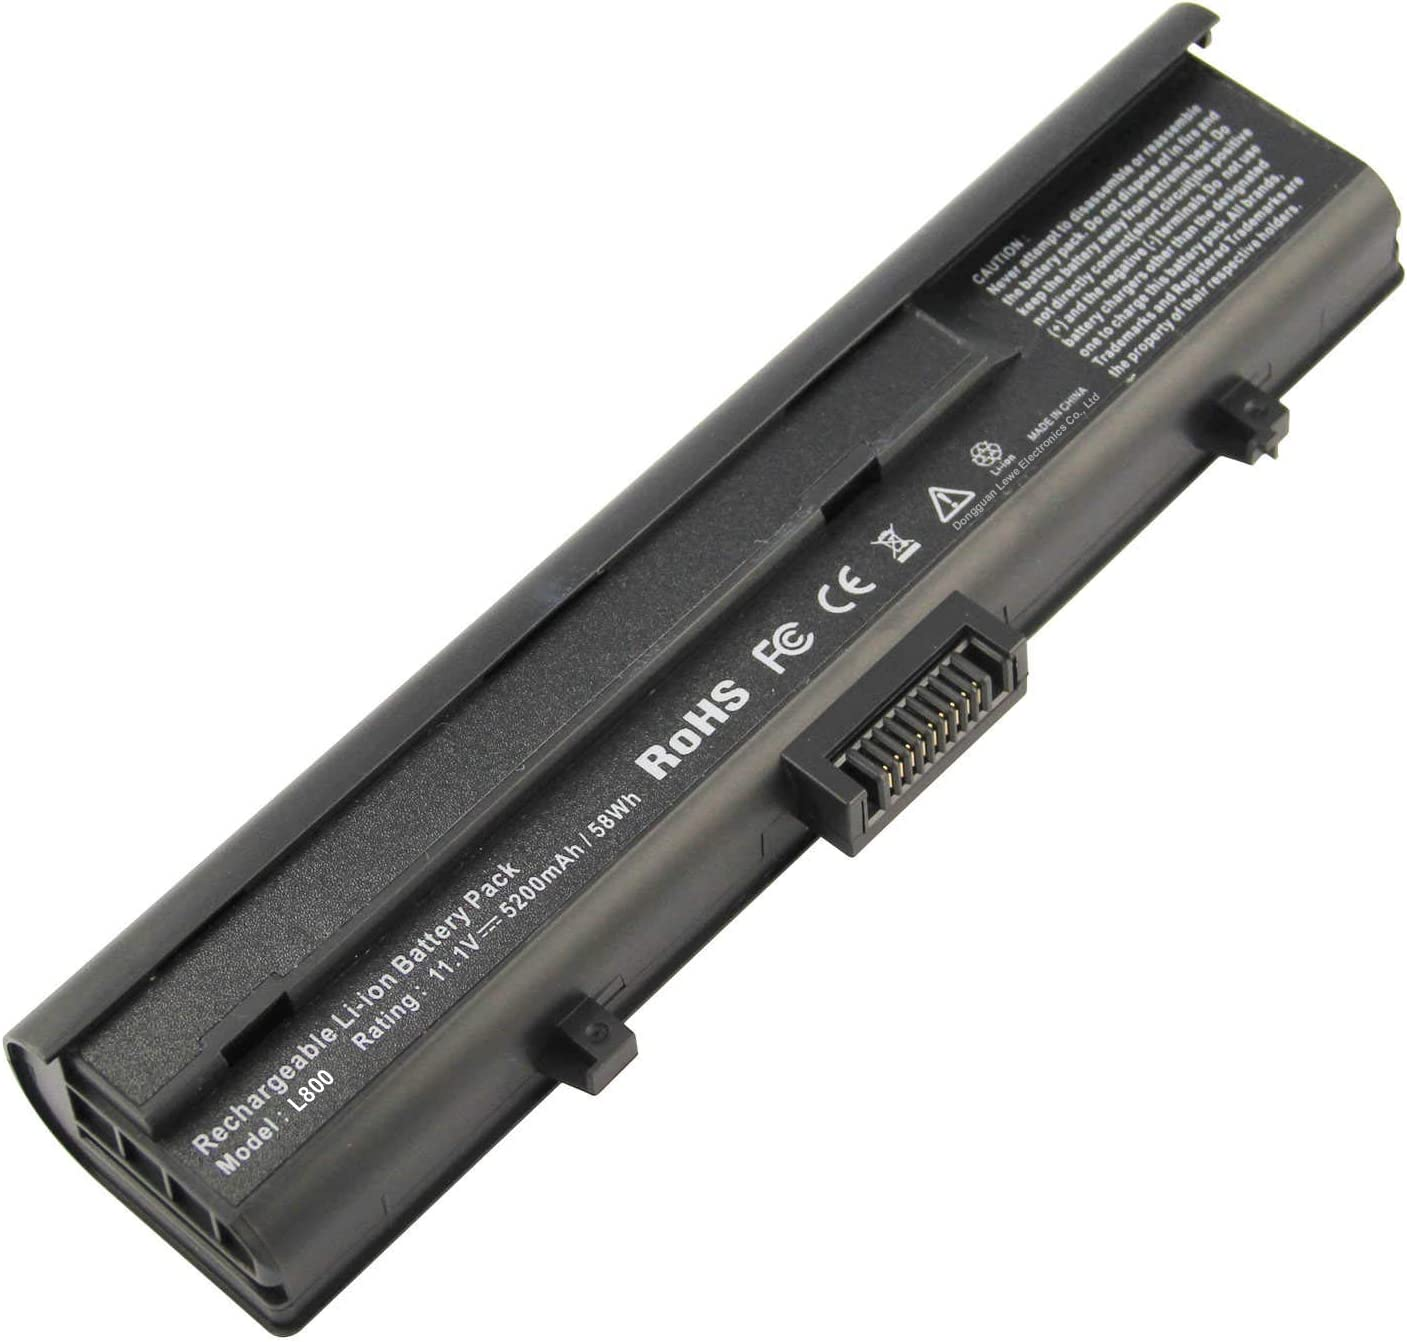 New Laptop Battery for Dell XPS M1330, 1330, Dell Inspiron 13/1318, fits P/N PU556 NT349